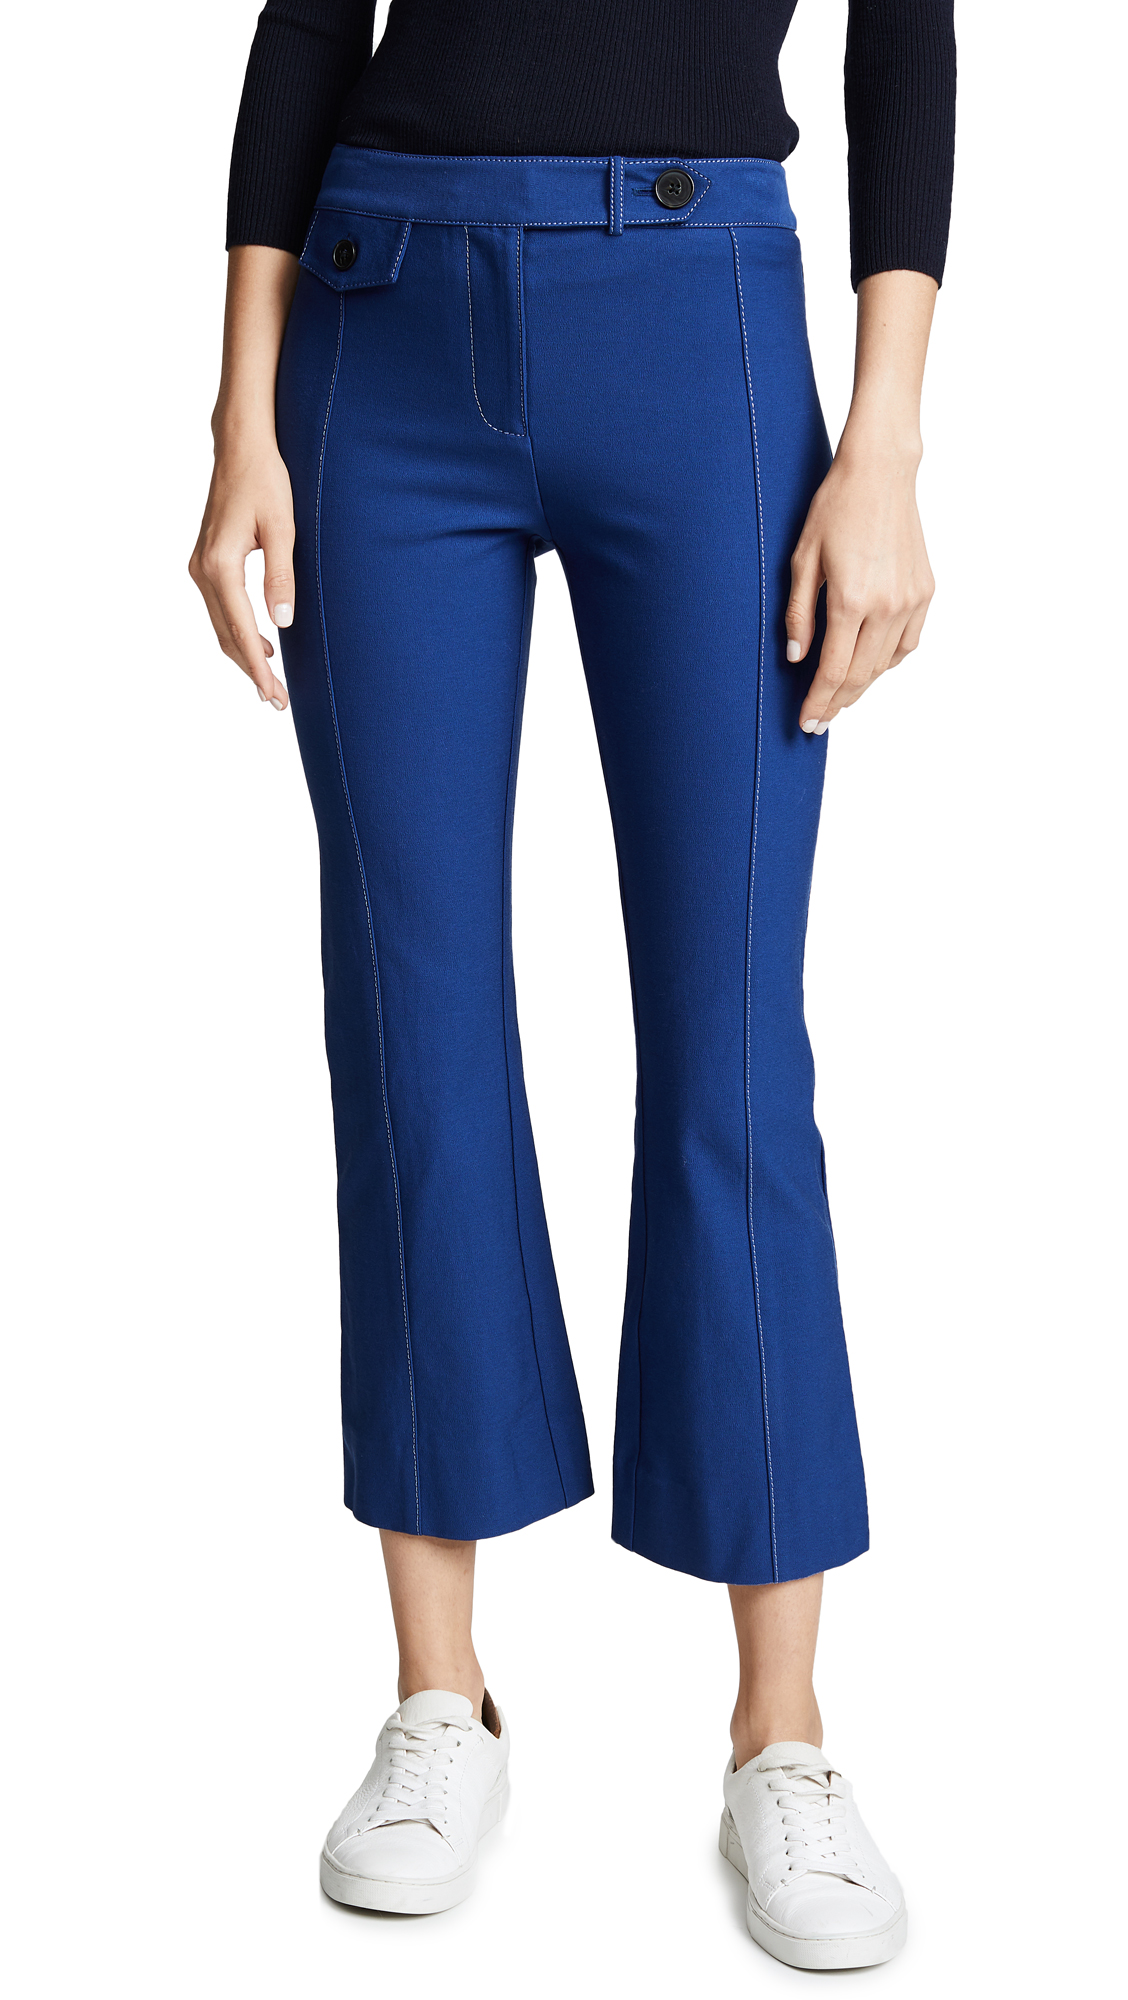 Derek Lam 10 Crosby Cropped Flare Trousers - Military/Blue